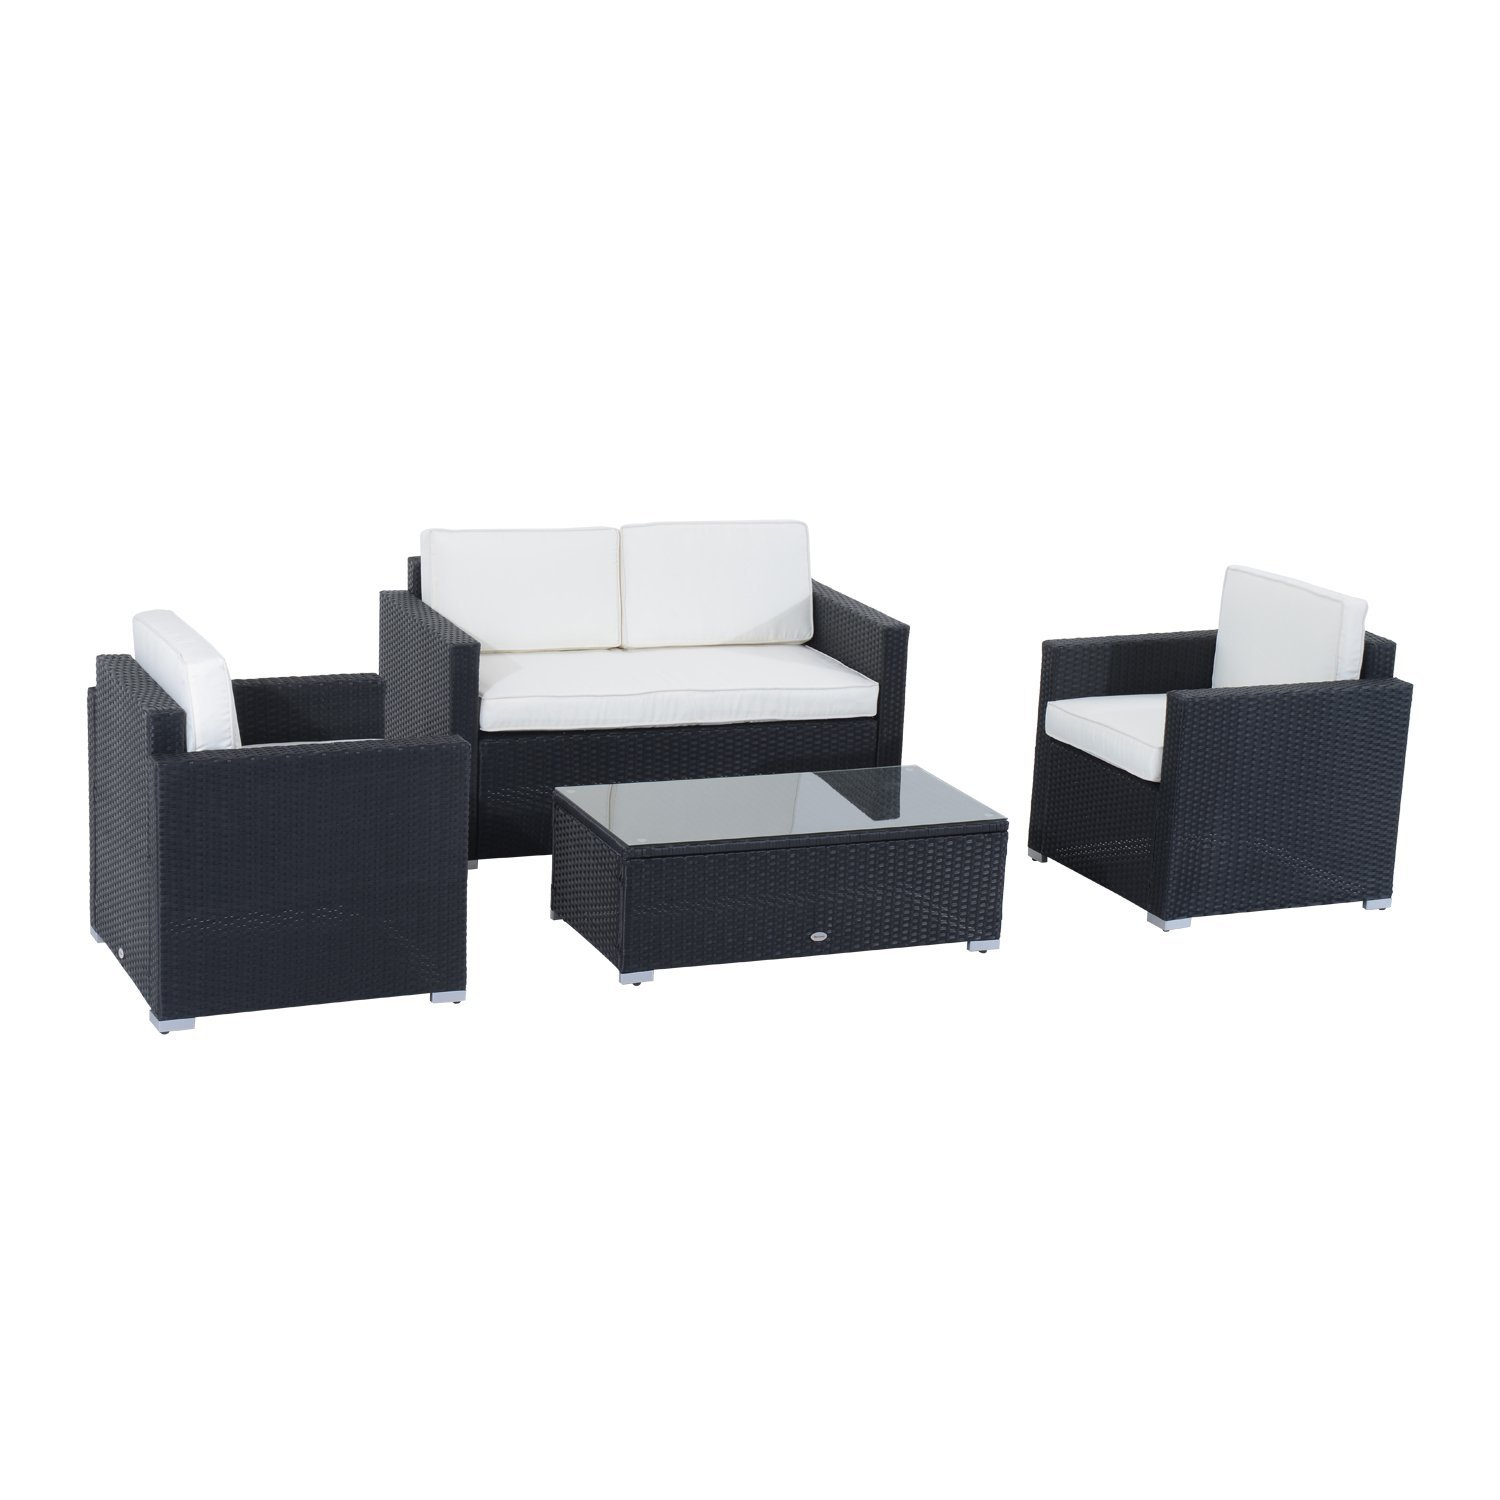 Outsunny 4pcs rattan furniture set with cushion black online only